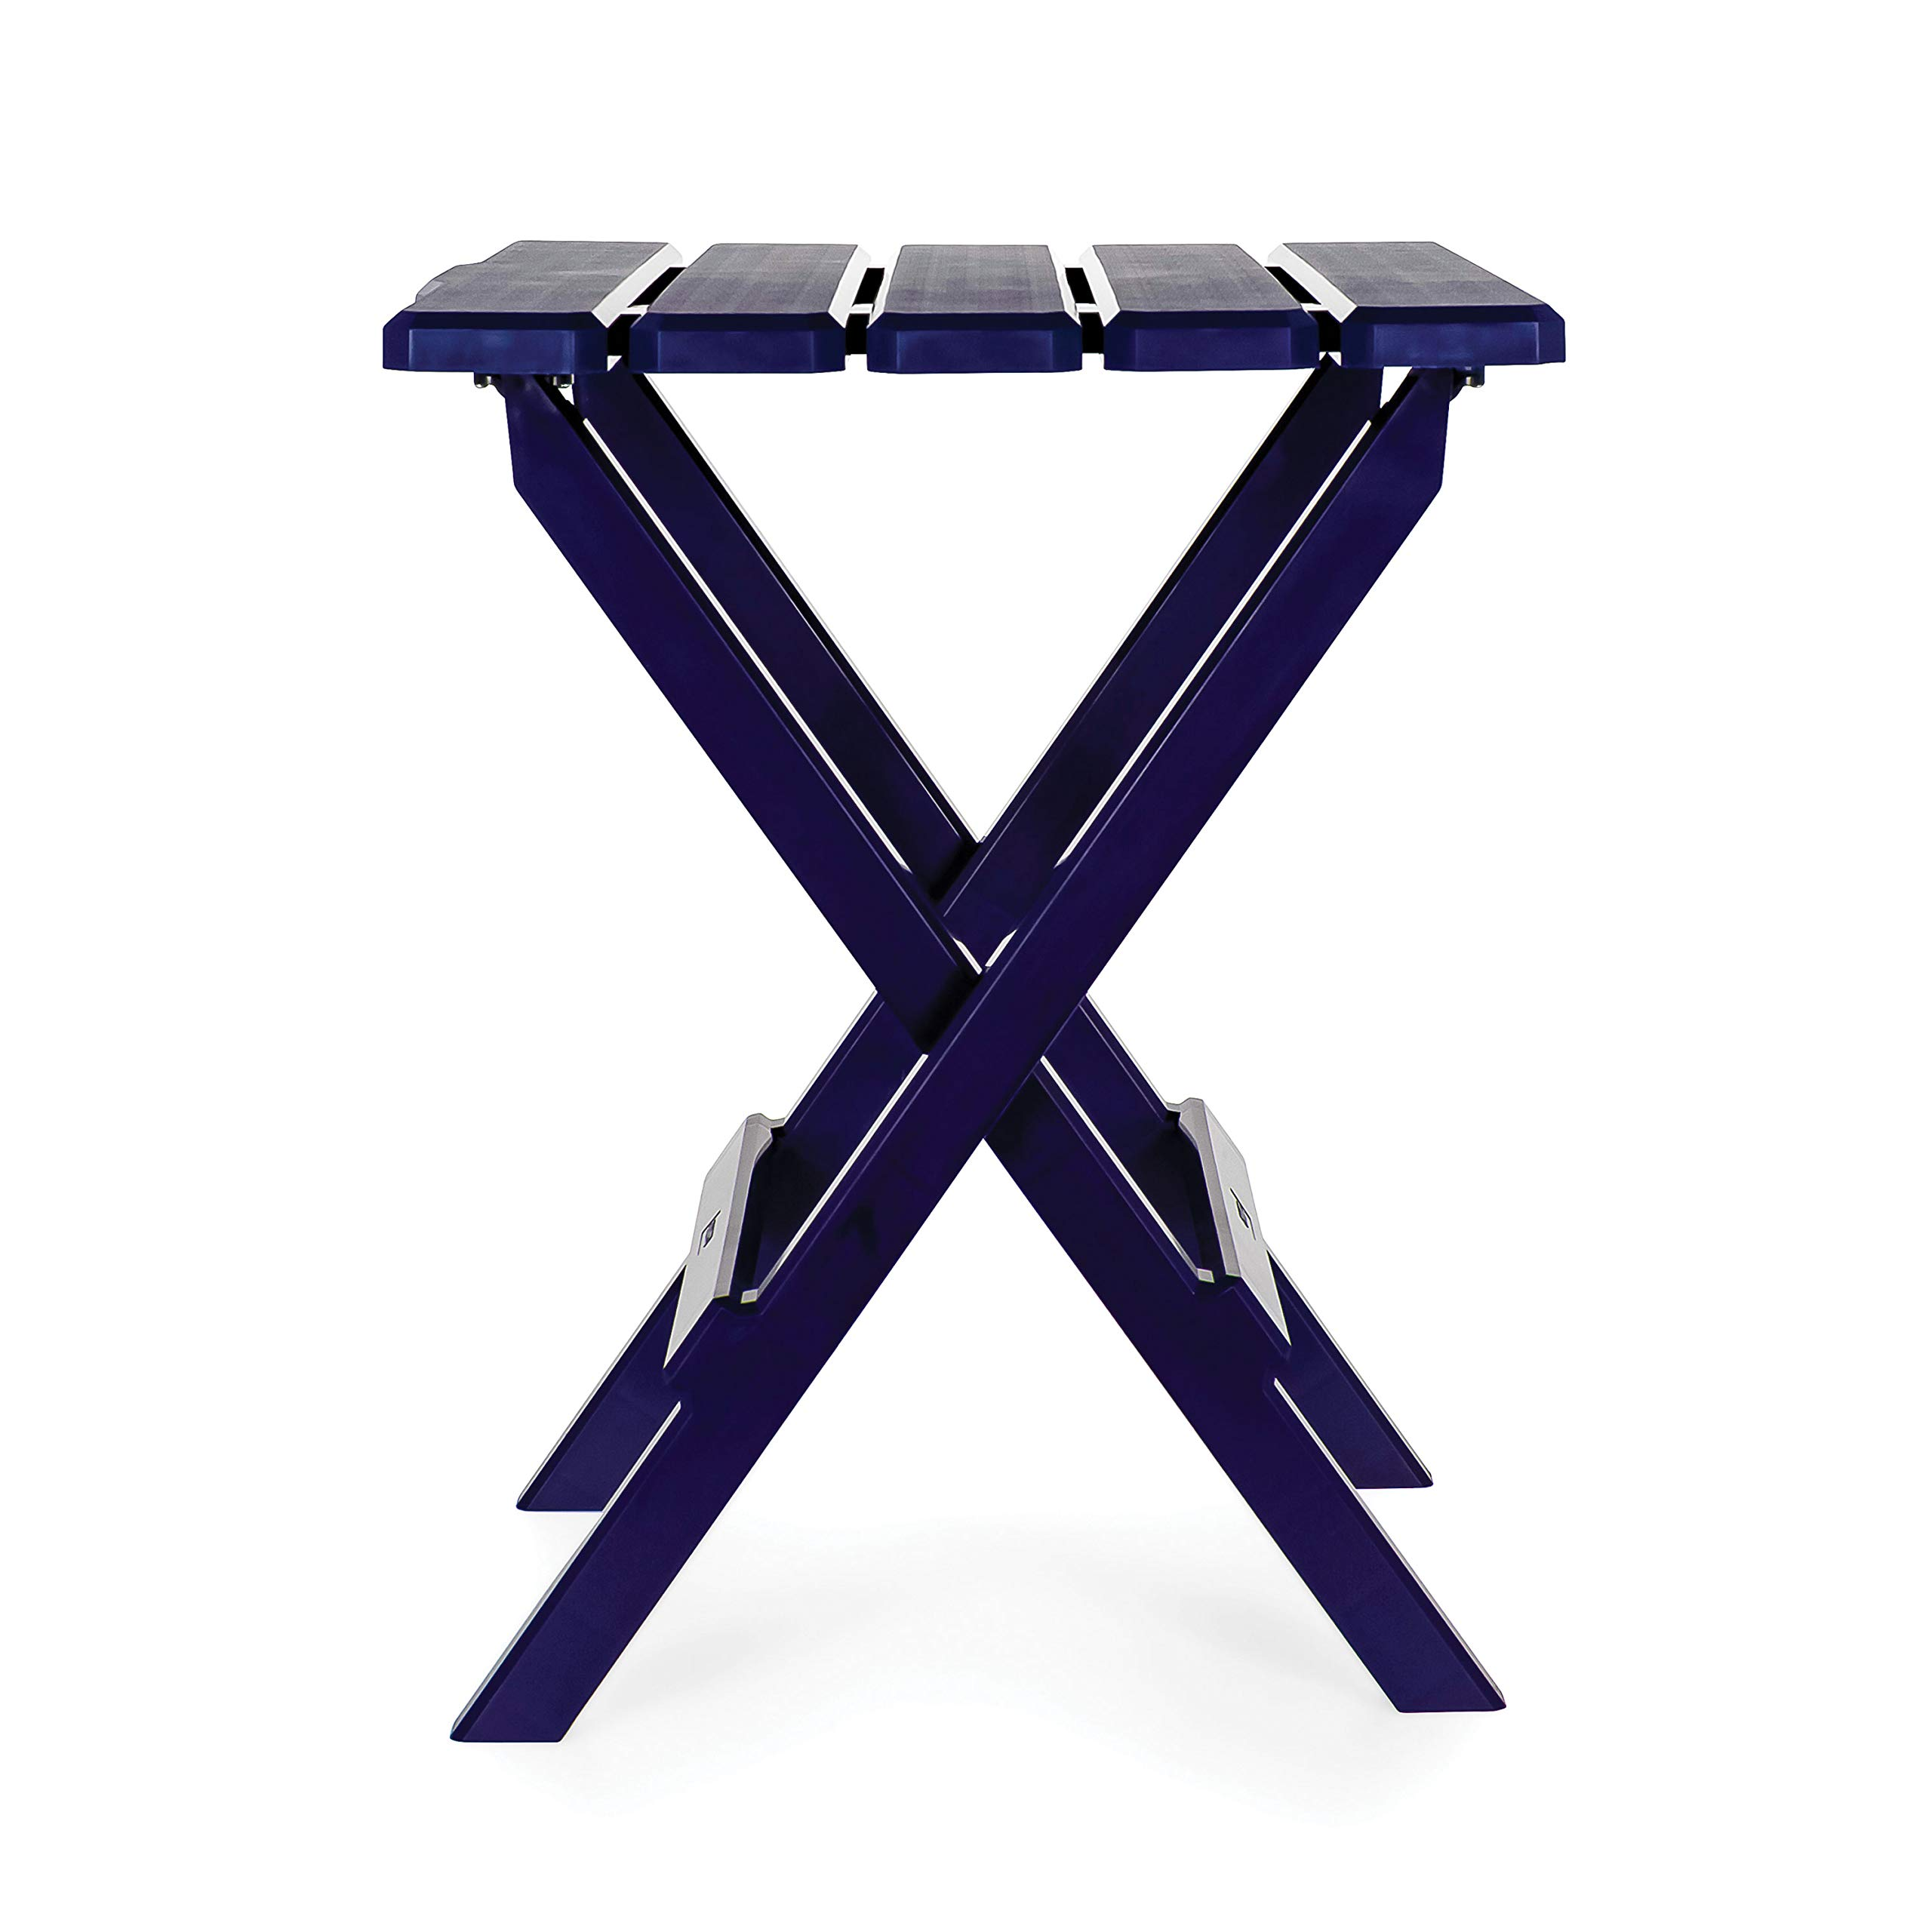 Camco 51693 Navy Large Adirondack Portable Outdoor Folding Side Table, Perfect for The Beach, Camping, Picnics, Cookouts and More, Weatherproof and Rust Resistant by Camco